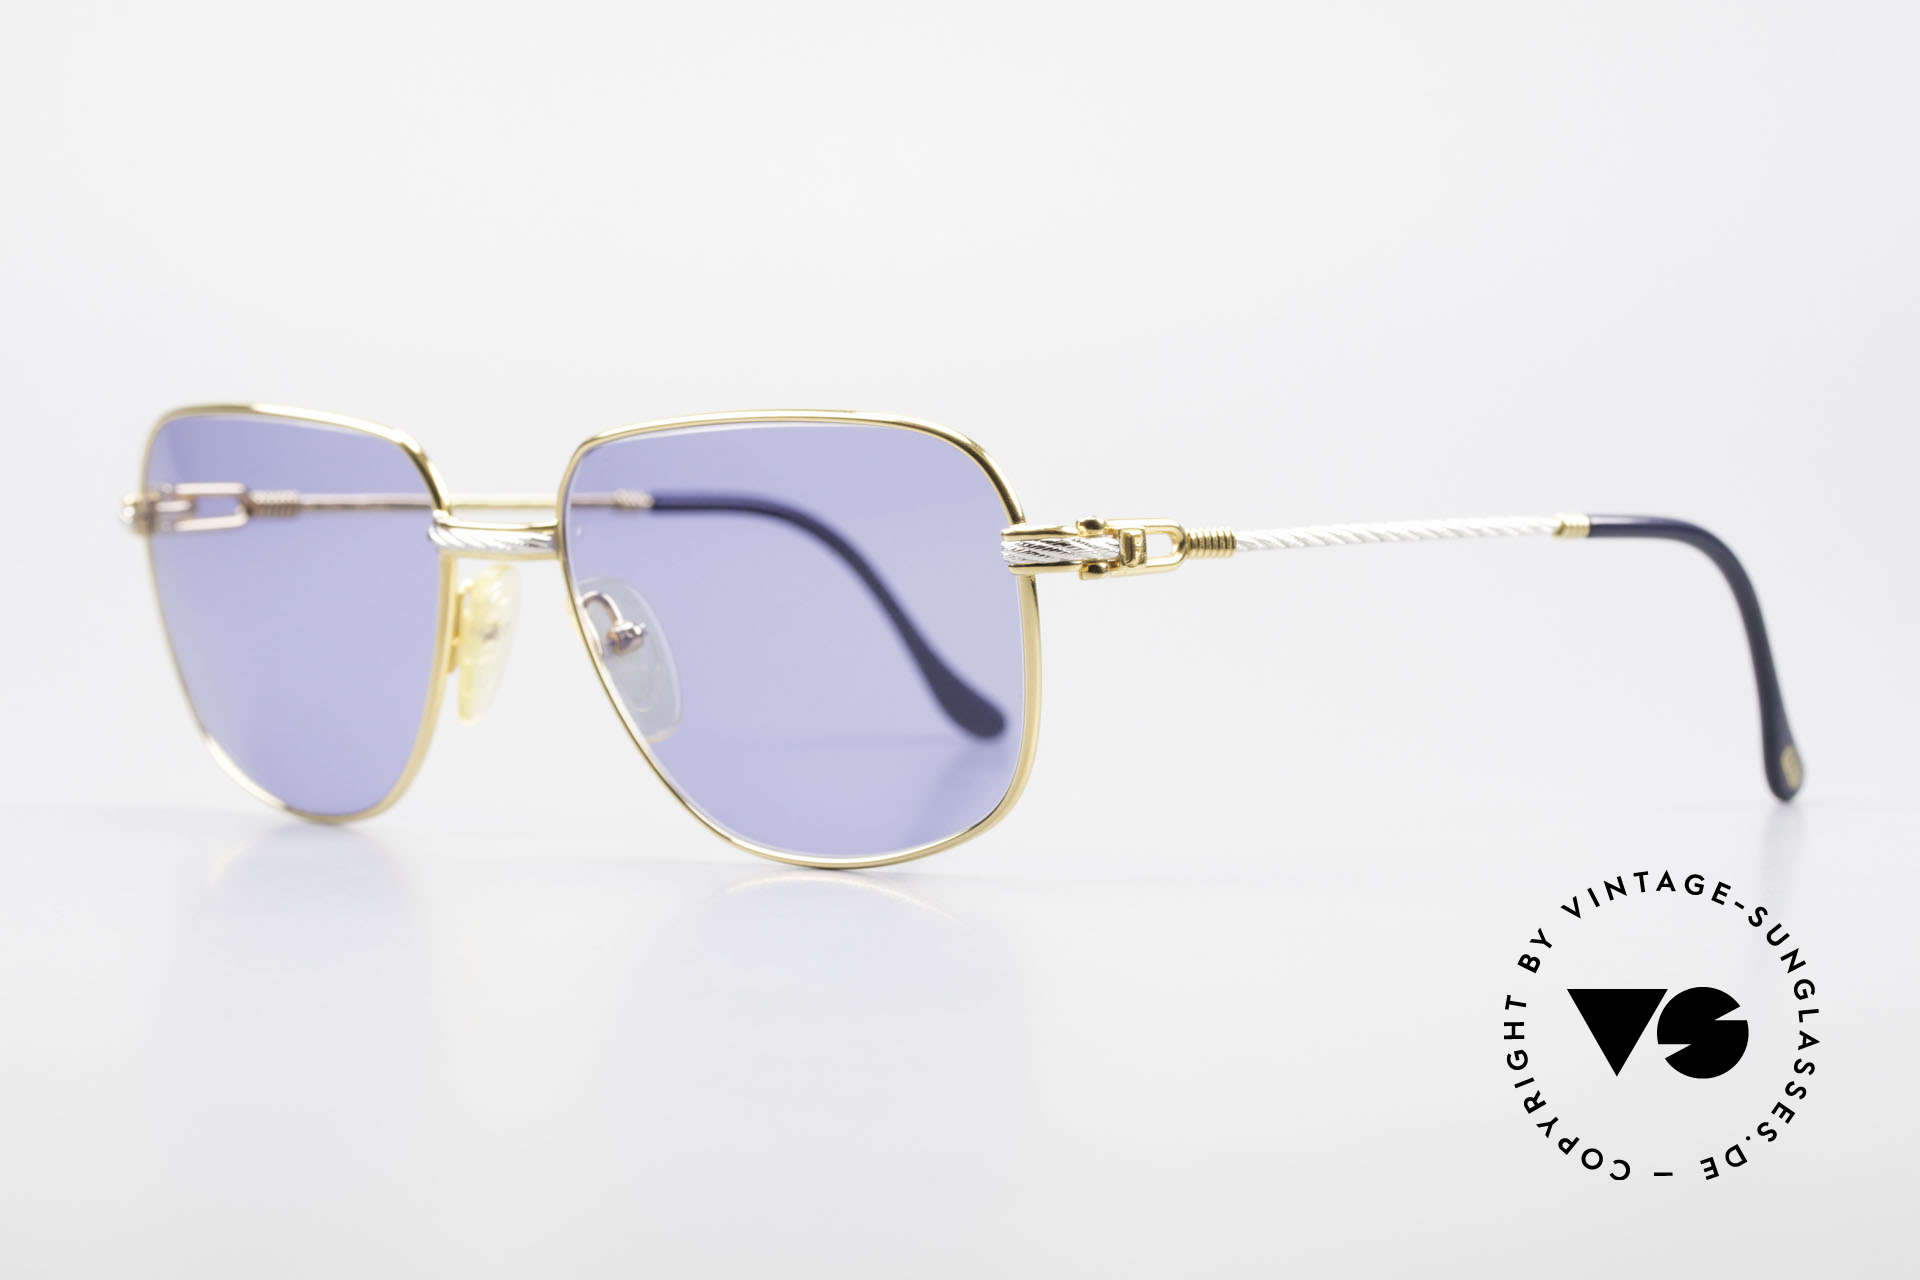 Fred Zephir Luxury Sailing Sunglasses Men, the name says it all: 'Zephir' = Greek for 'Wind God', Made for Men